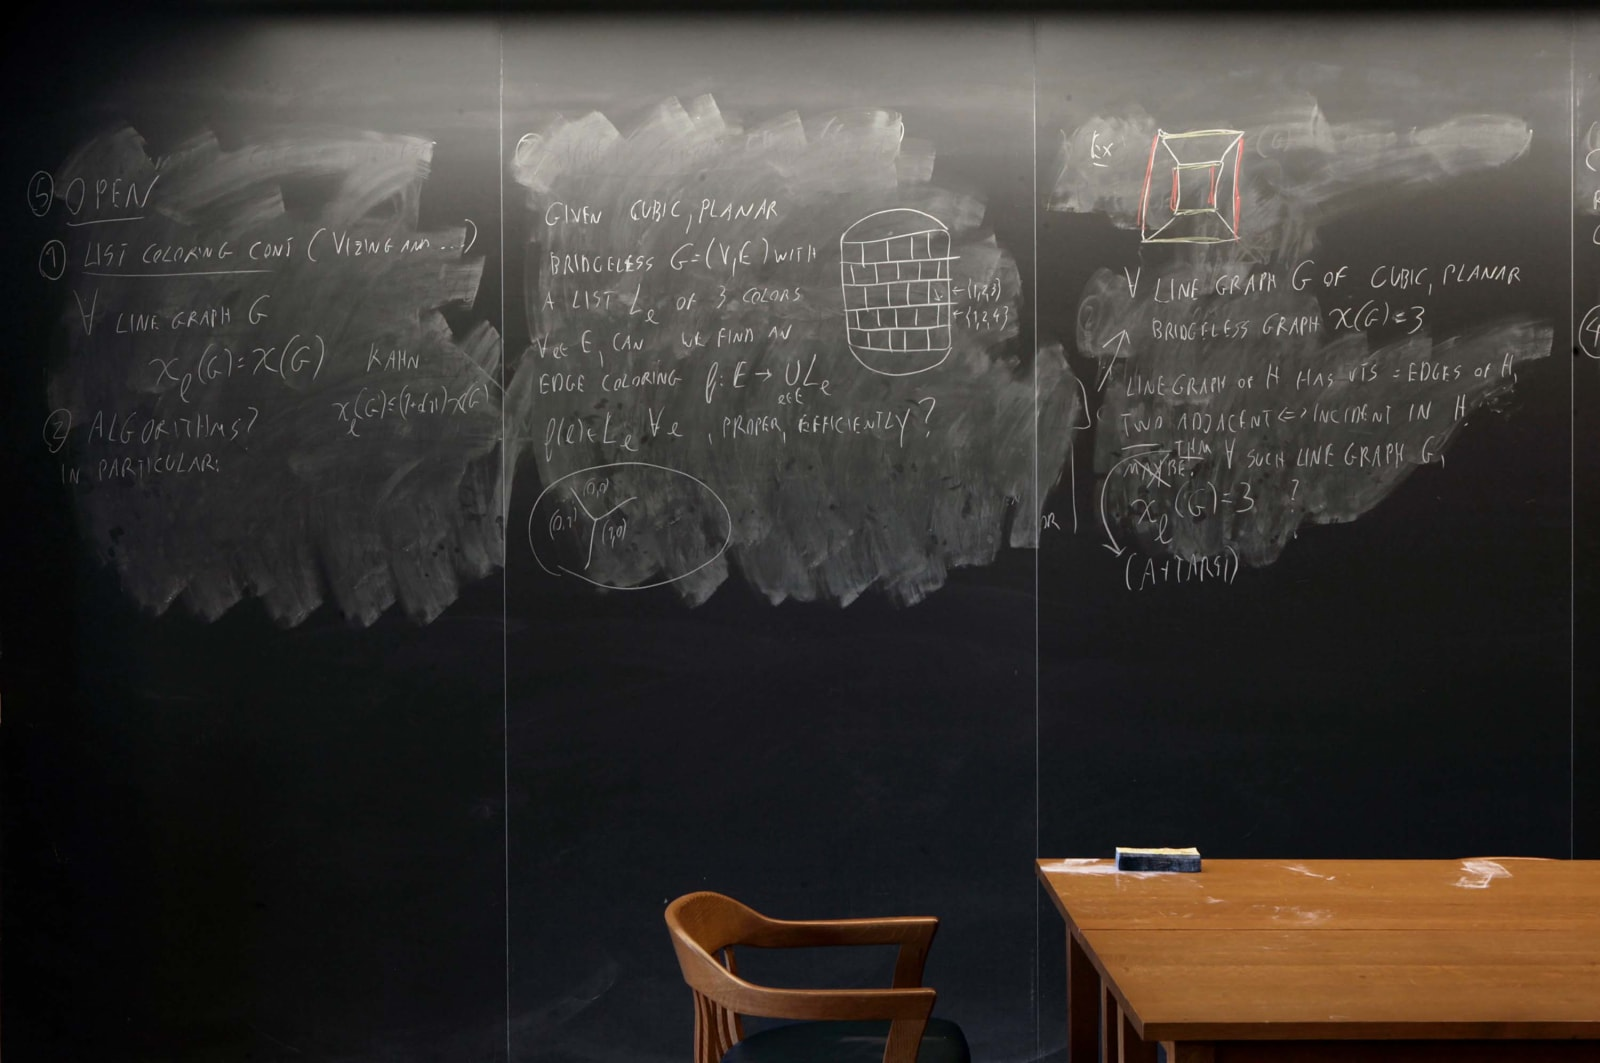 Wall sized chalkboard with erasures and formulas by professor Noga Alon, with wooden chair and desk in front, from the Do Not Erase series by Jessica Wynne